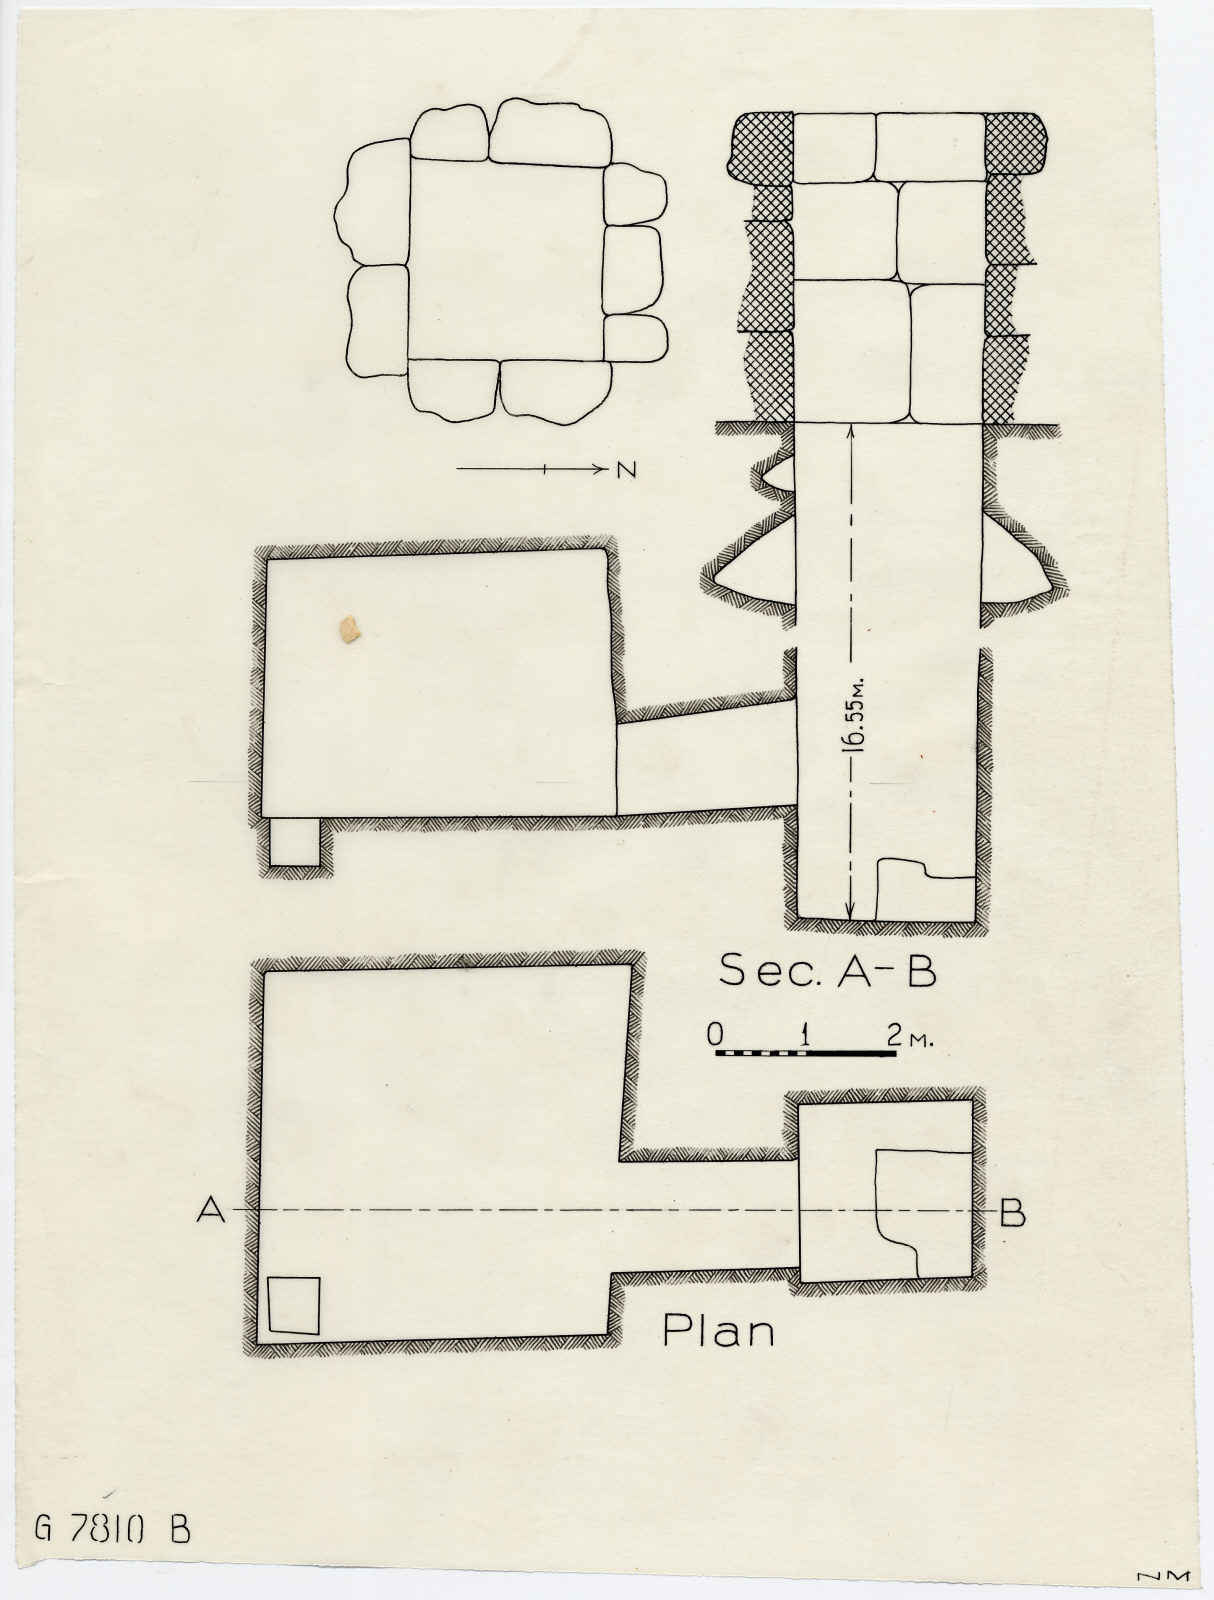 Maps and plans: G 7810, Shaft B